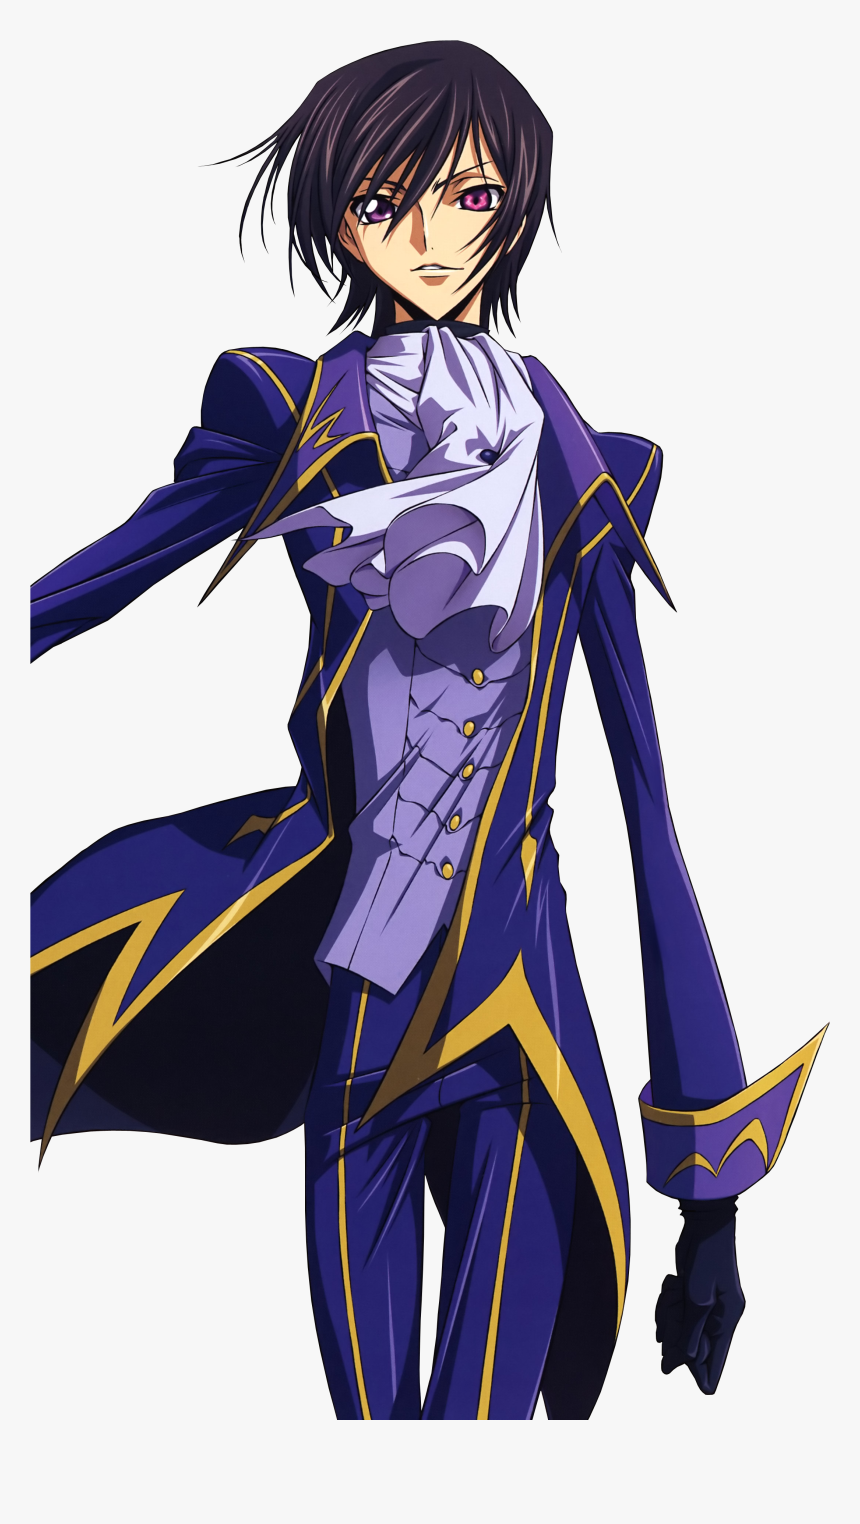 Lelouch Lamperouge Best Character In Anime History - Lelouch Vi Britannia Png, Transparent Png, Free Download